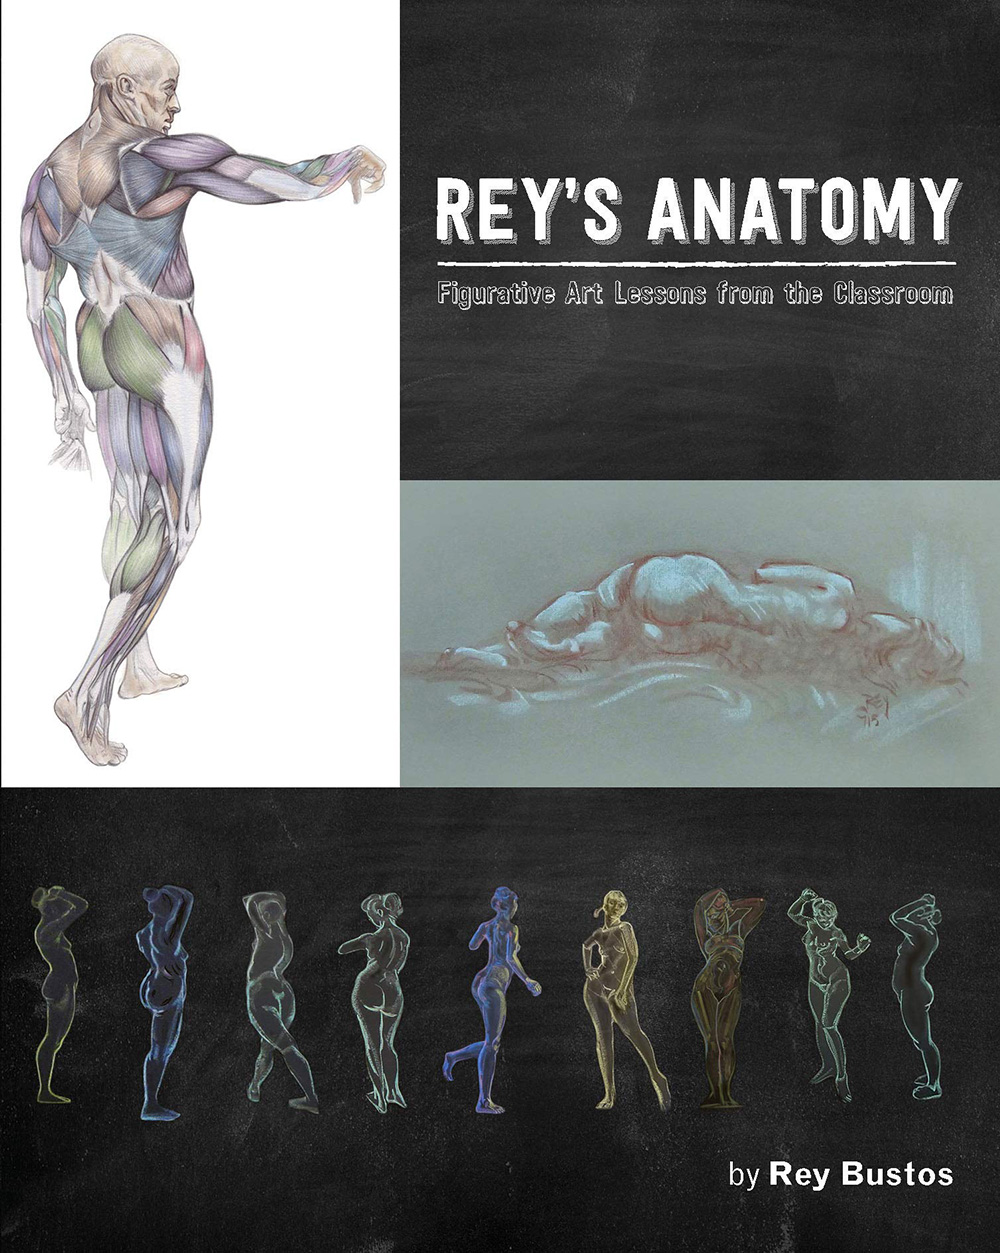 Rey's Anatomy: Figurative Art Lessons From the Classroom